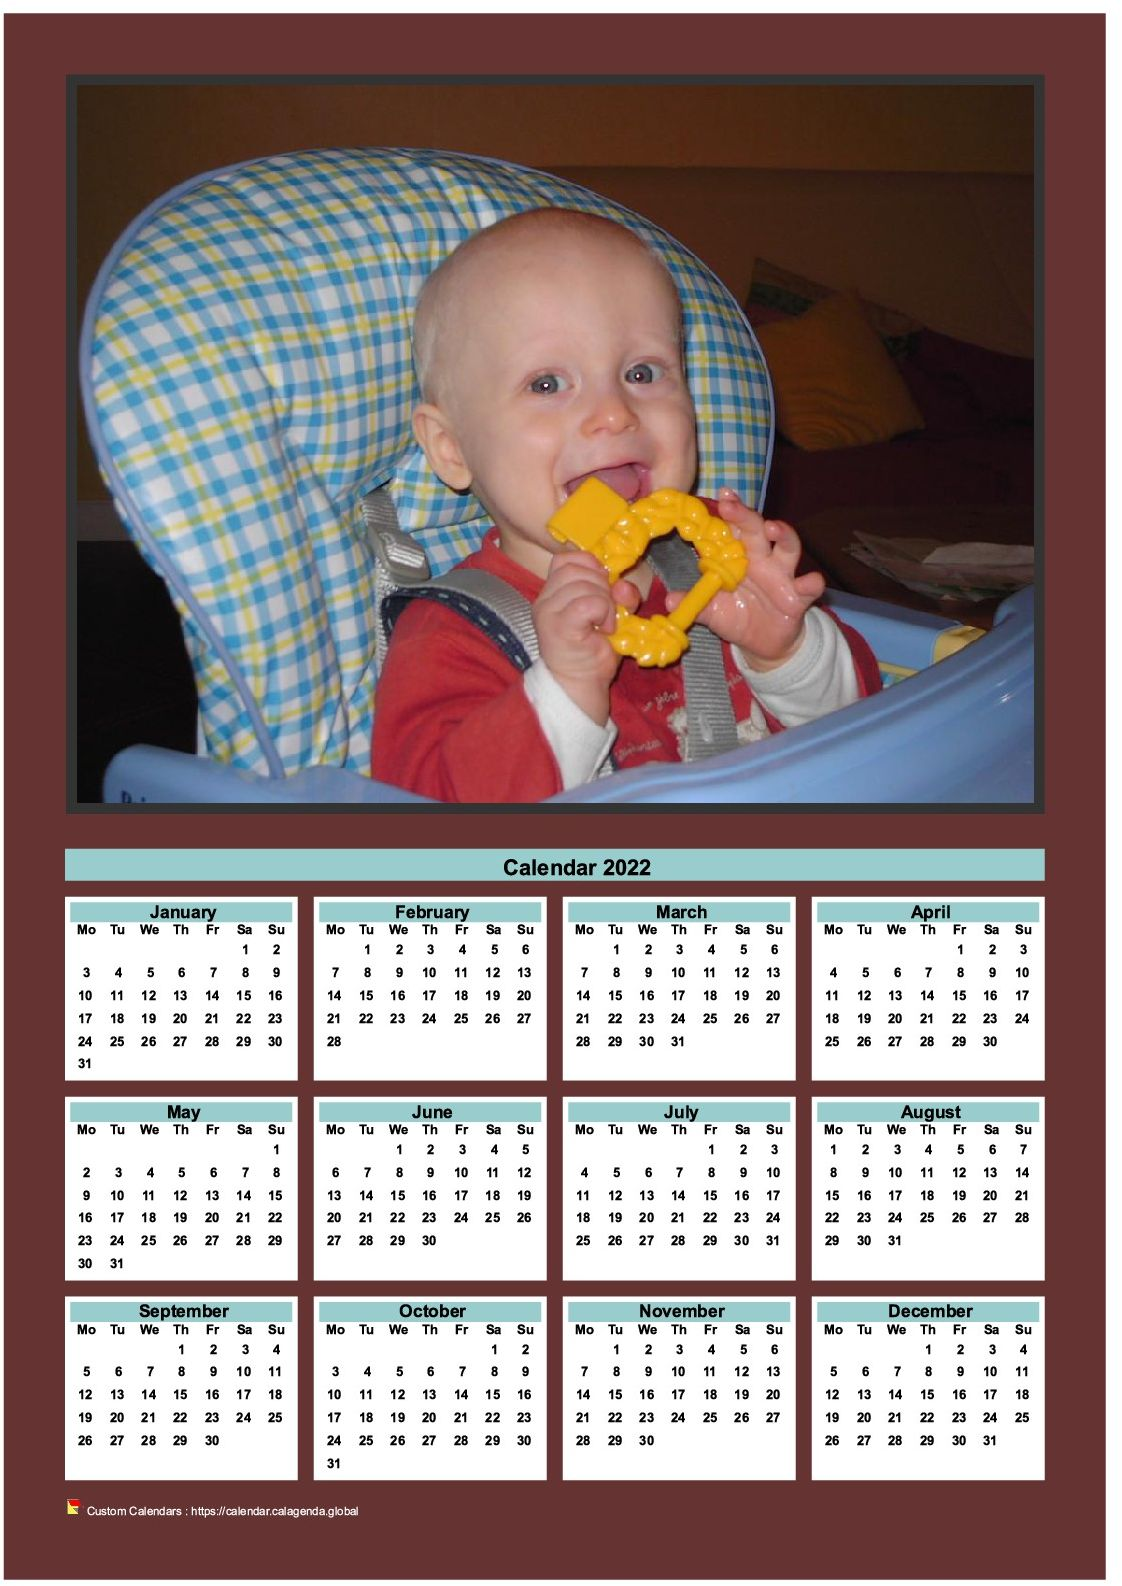 Calendar 2022 annual to print with family photo